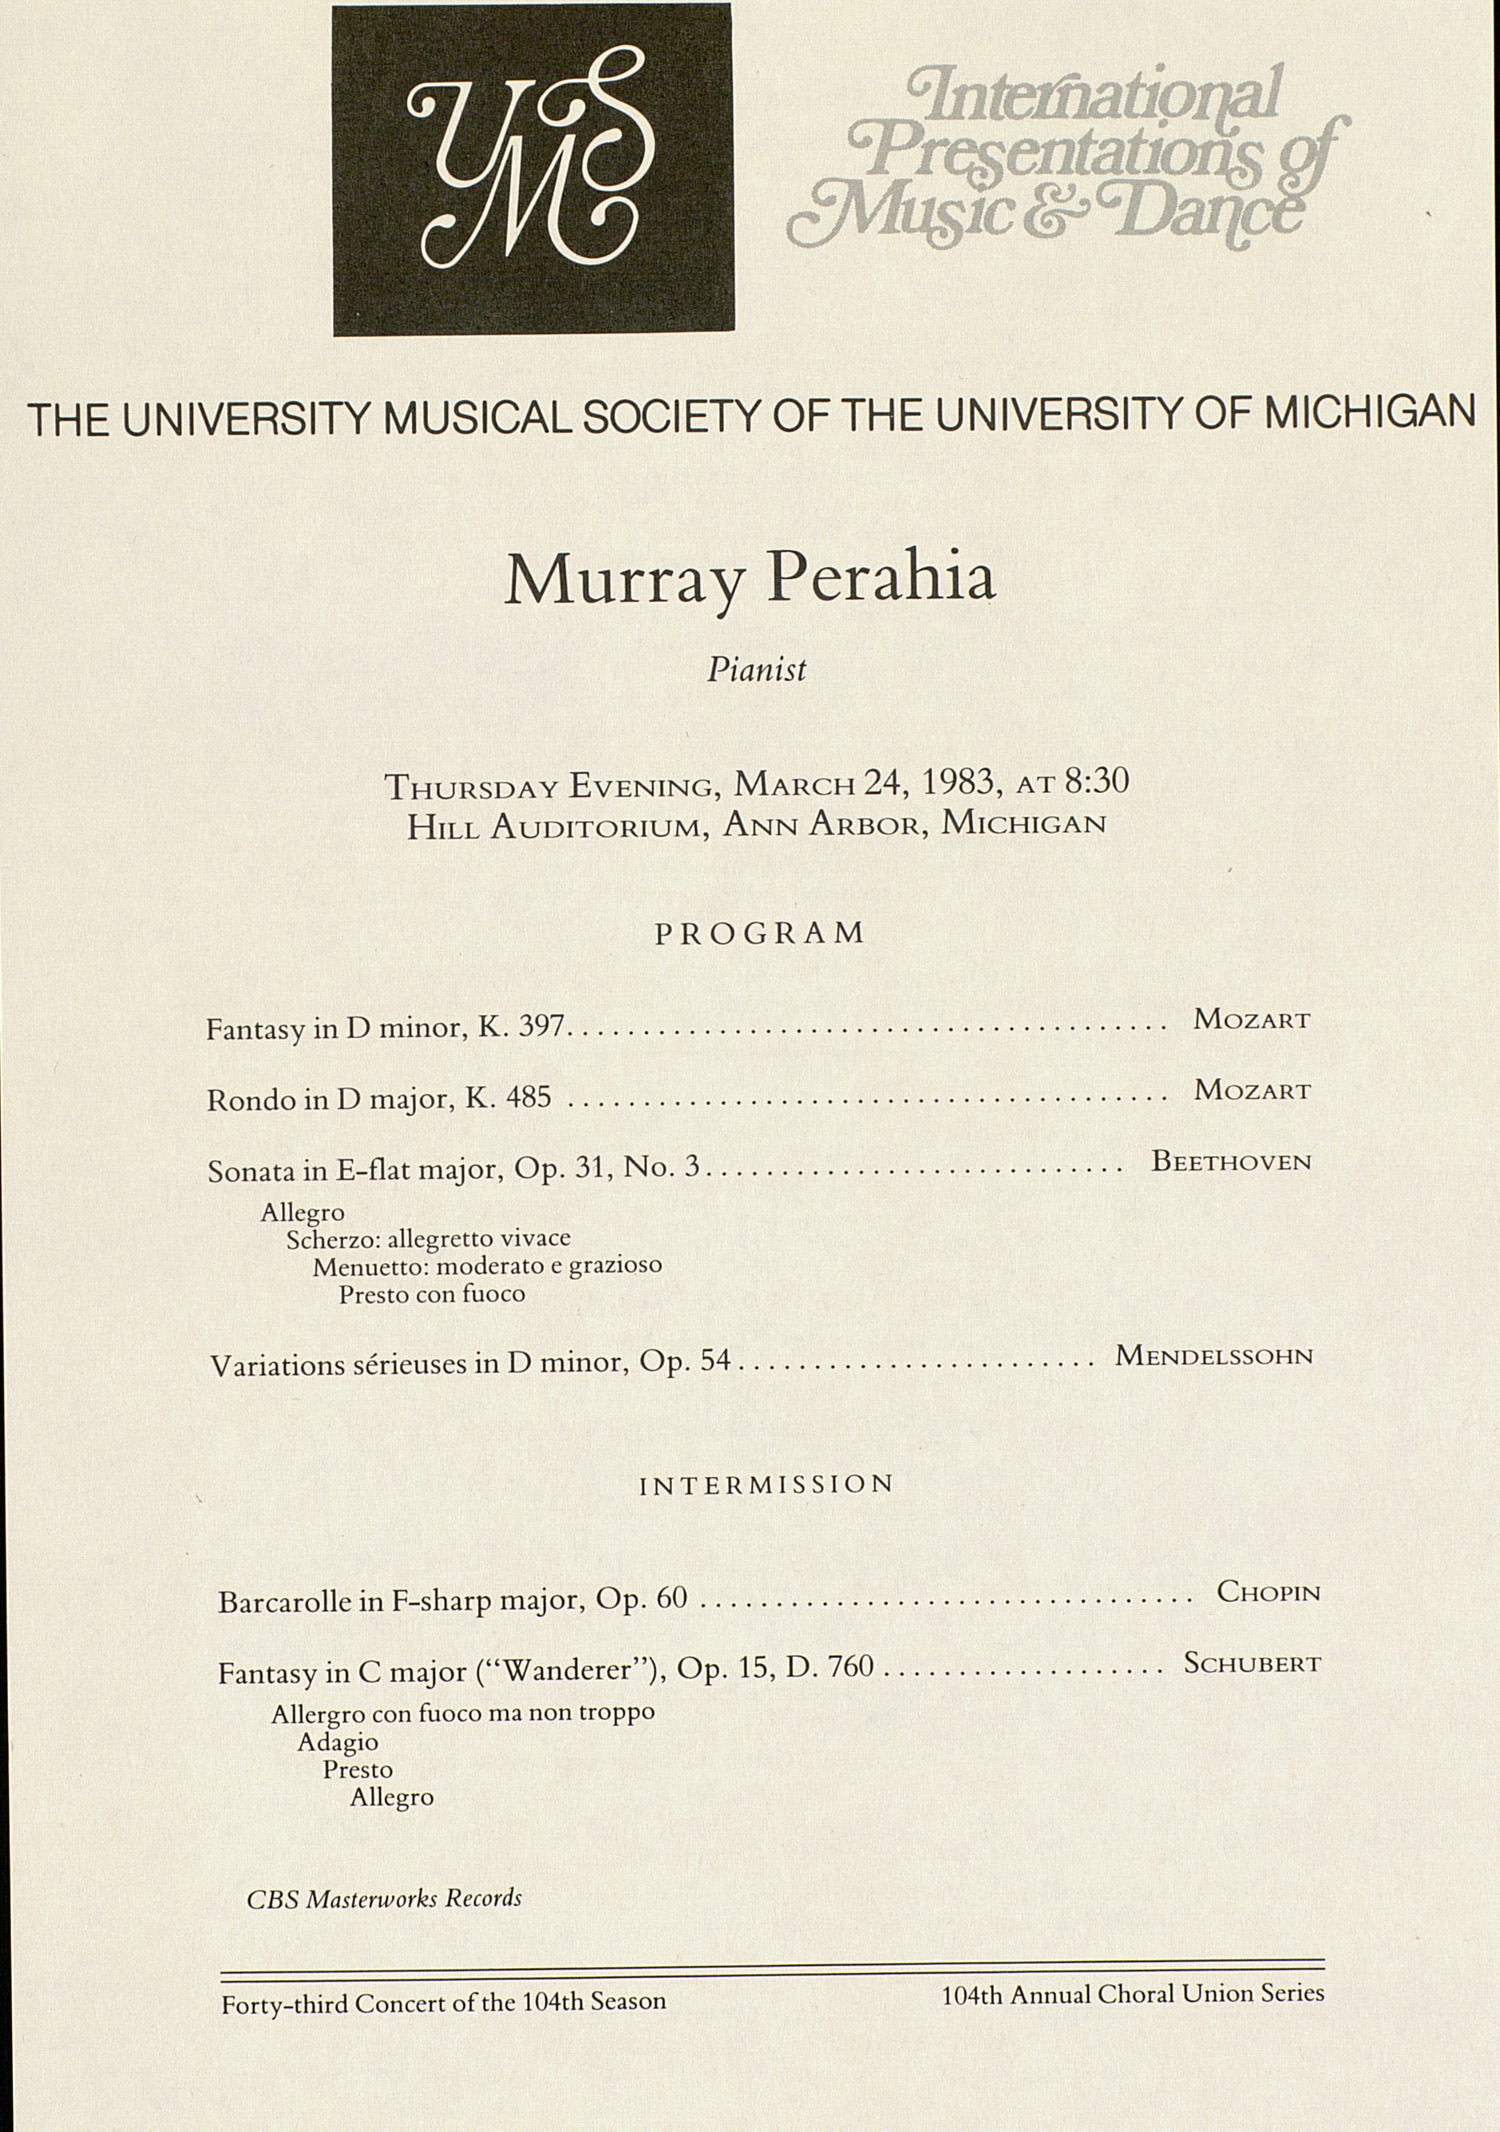 UMS Concert Program, March 24, 1983: International Presentations Of Music & Dance --  image